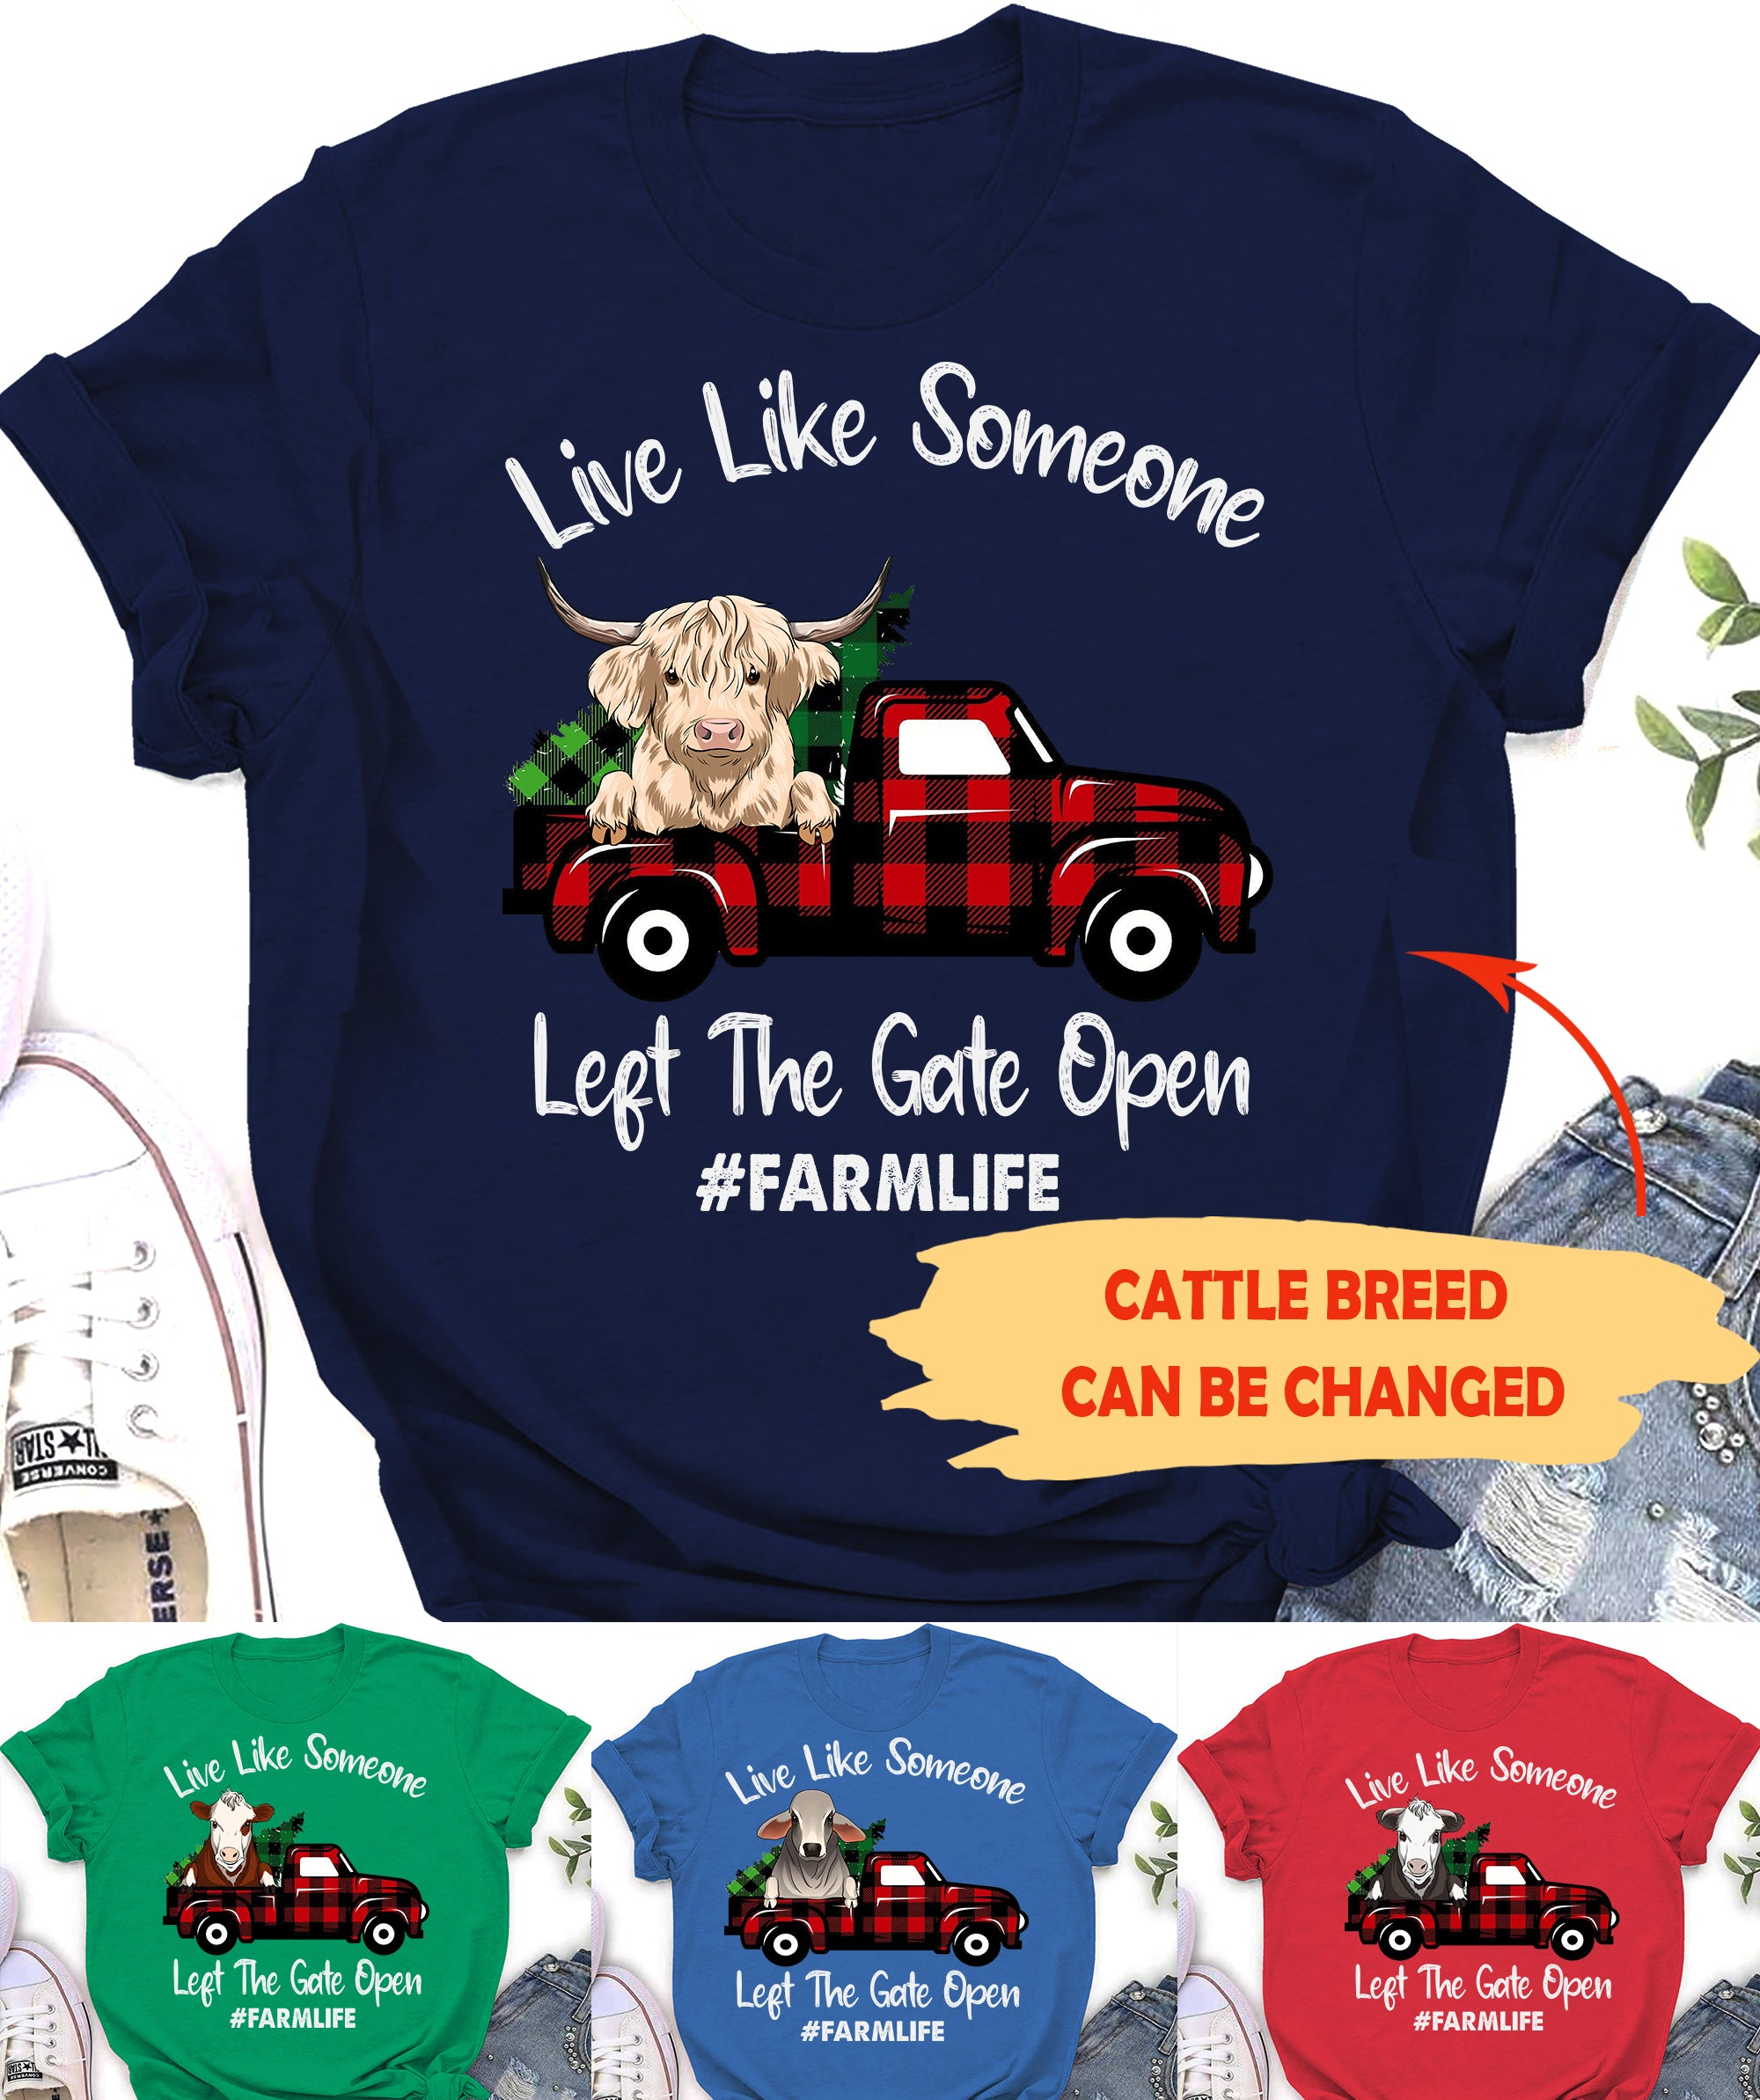 Live Like Someone Left The Gate Open - Personalized Custom Unisex T-Shirt - Cow Farm Shirt